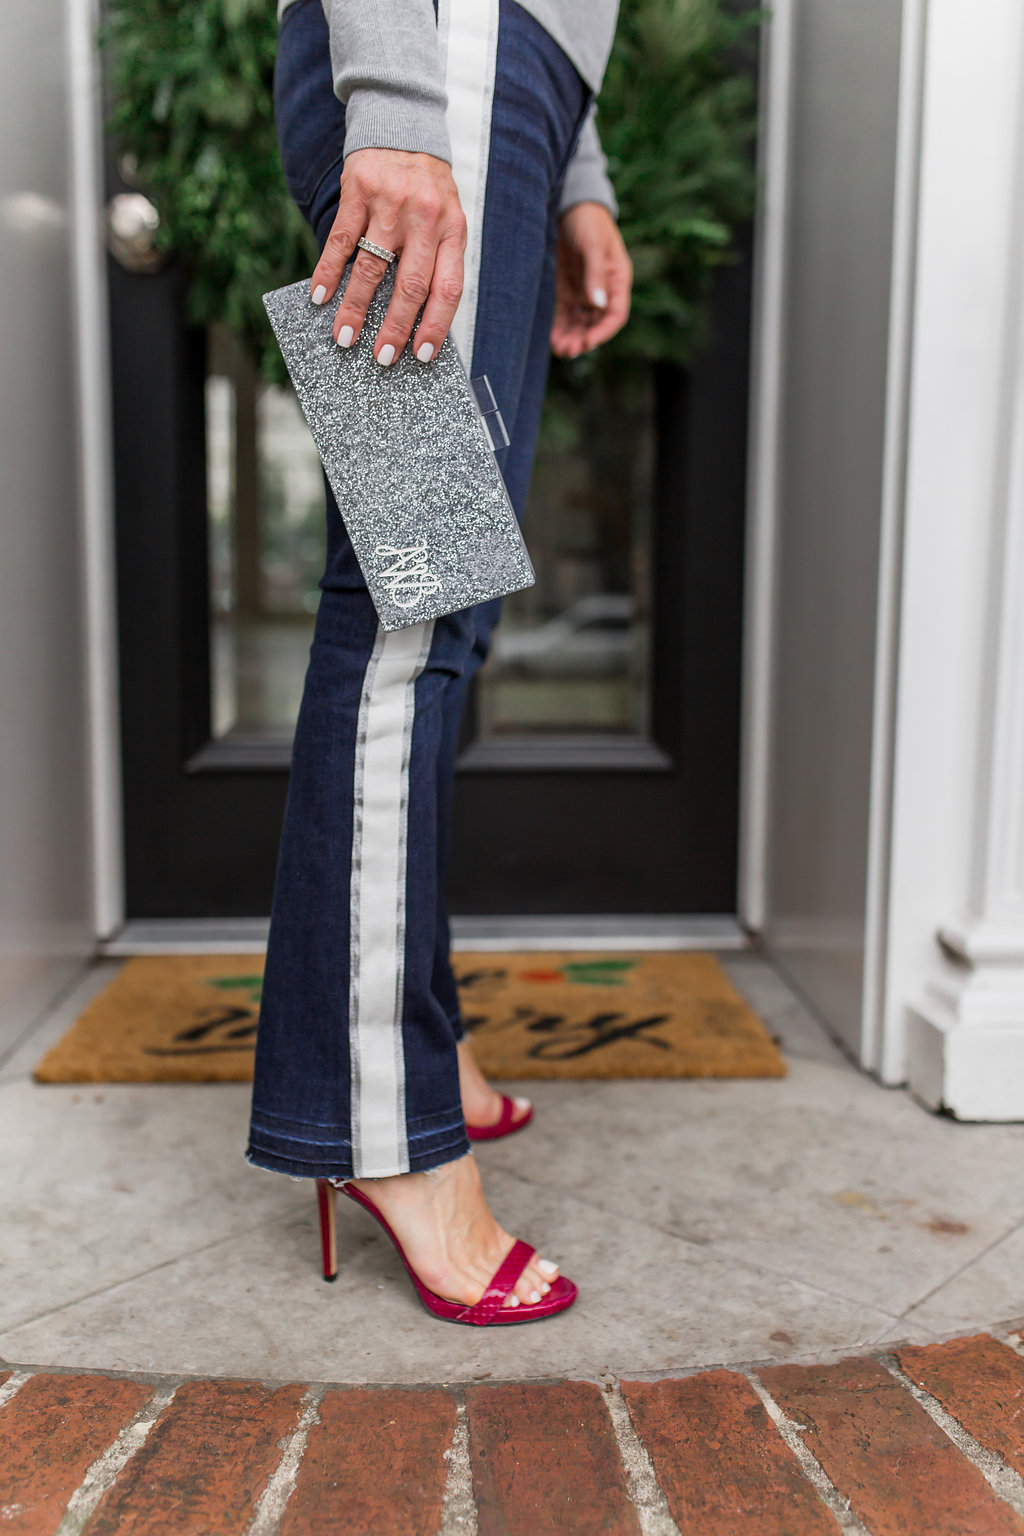 How To Wear Jeans to a Holiday Party | Tuxedo Stripes and Sparkle